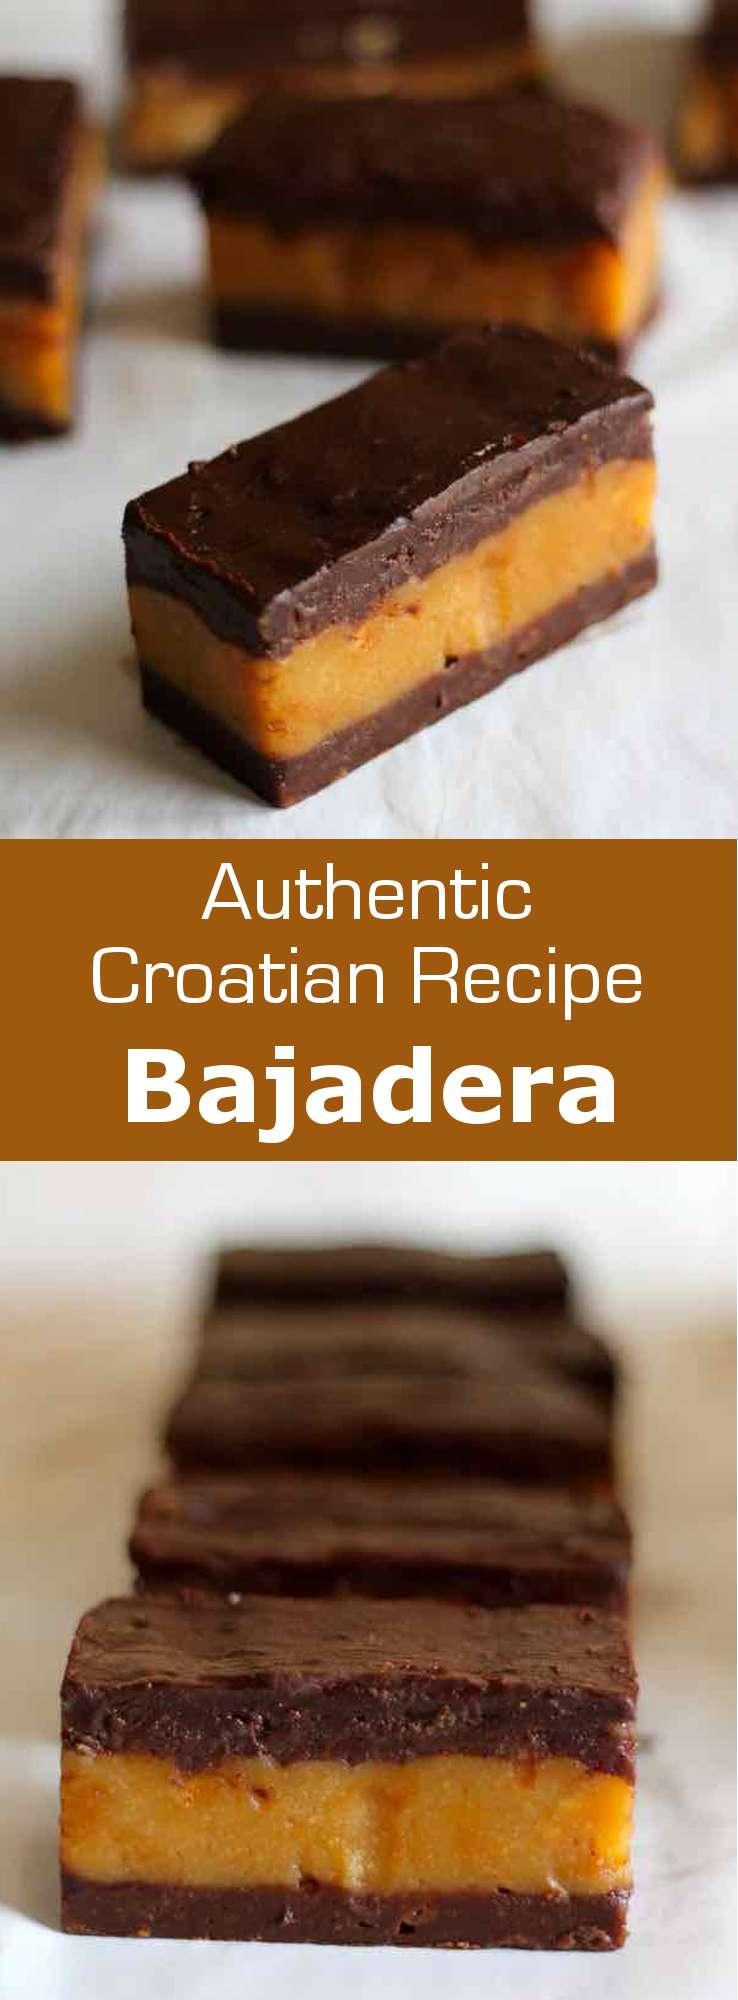 Bajadera is a delicious traditional Croatian treat made from cookie crumbs and chocolate.